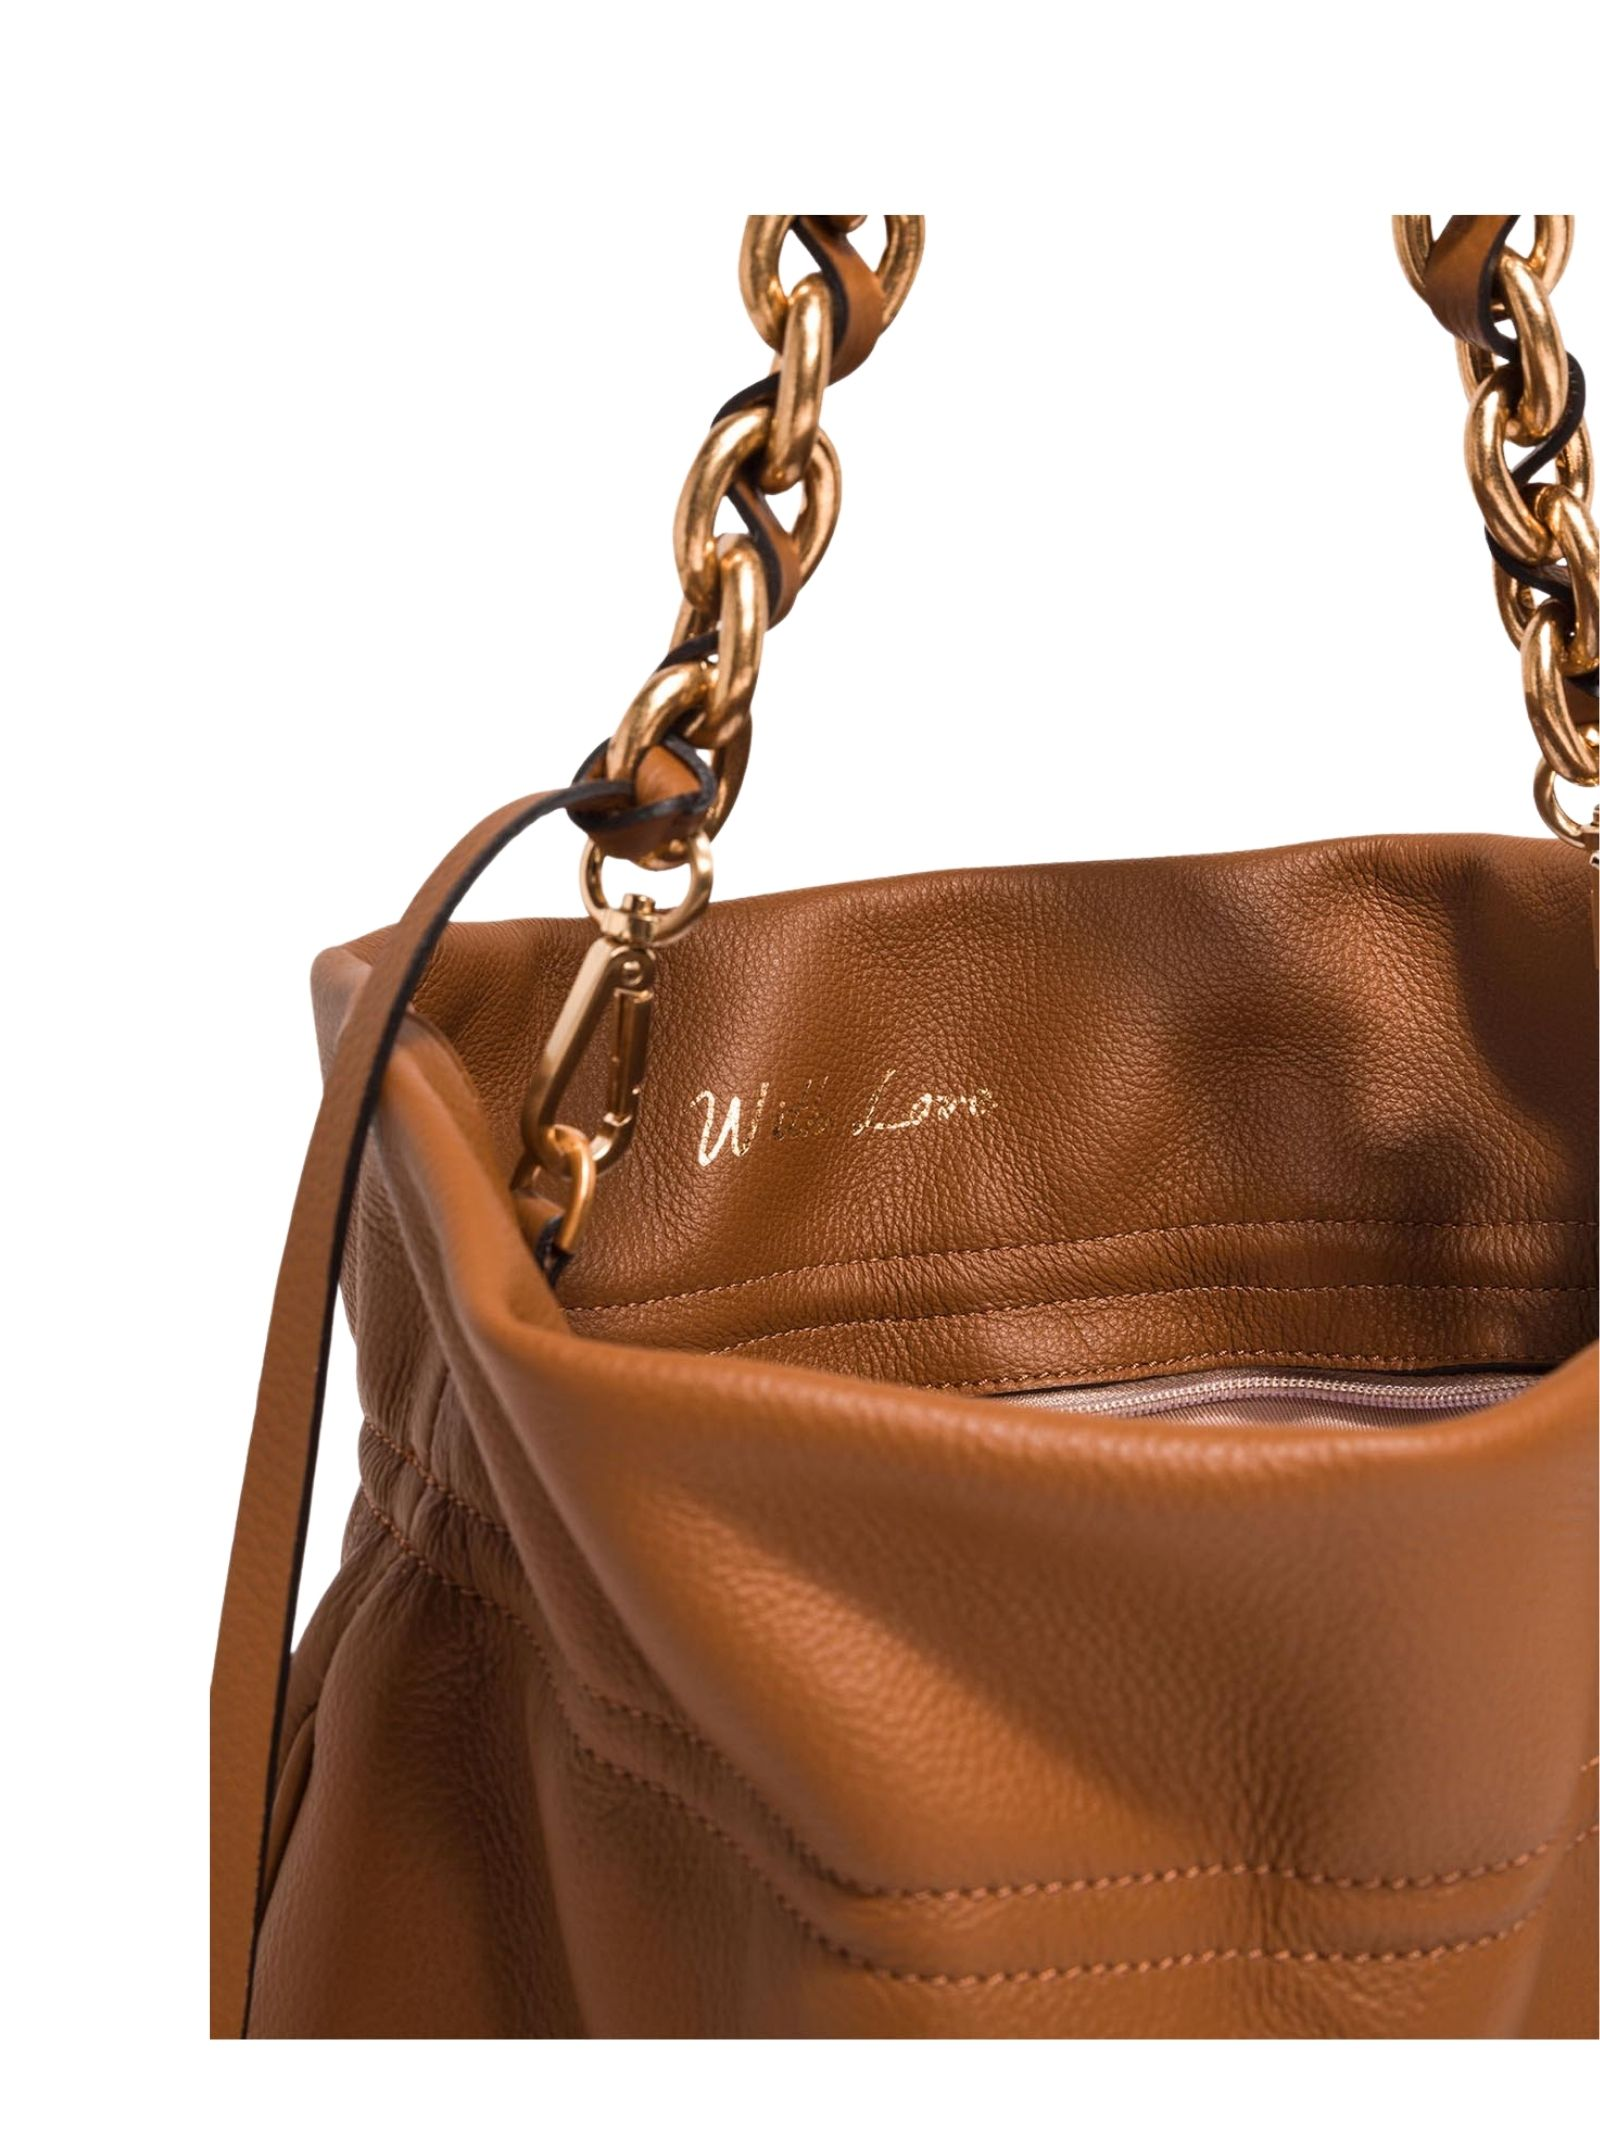 Women's Shoulder Bag Small Memory In Tan Leather With Gold Chain Handle and Adjustable and Detachable Leather Cross-body Strap in Matching Color Gianni Chiarini | Bags and backpacks | BS8381206